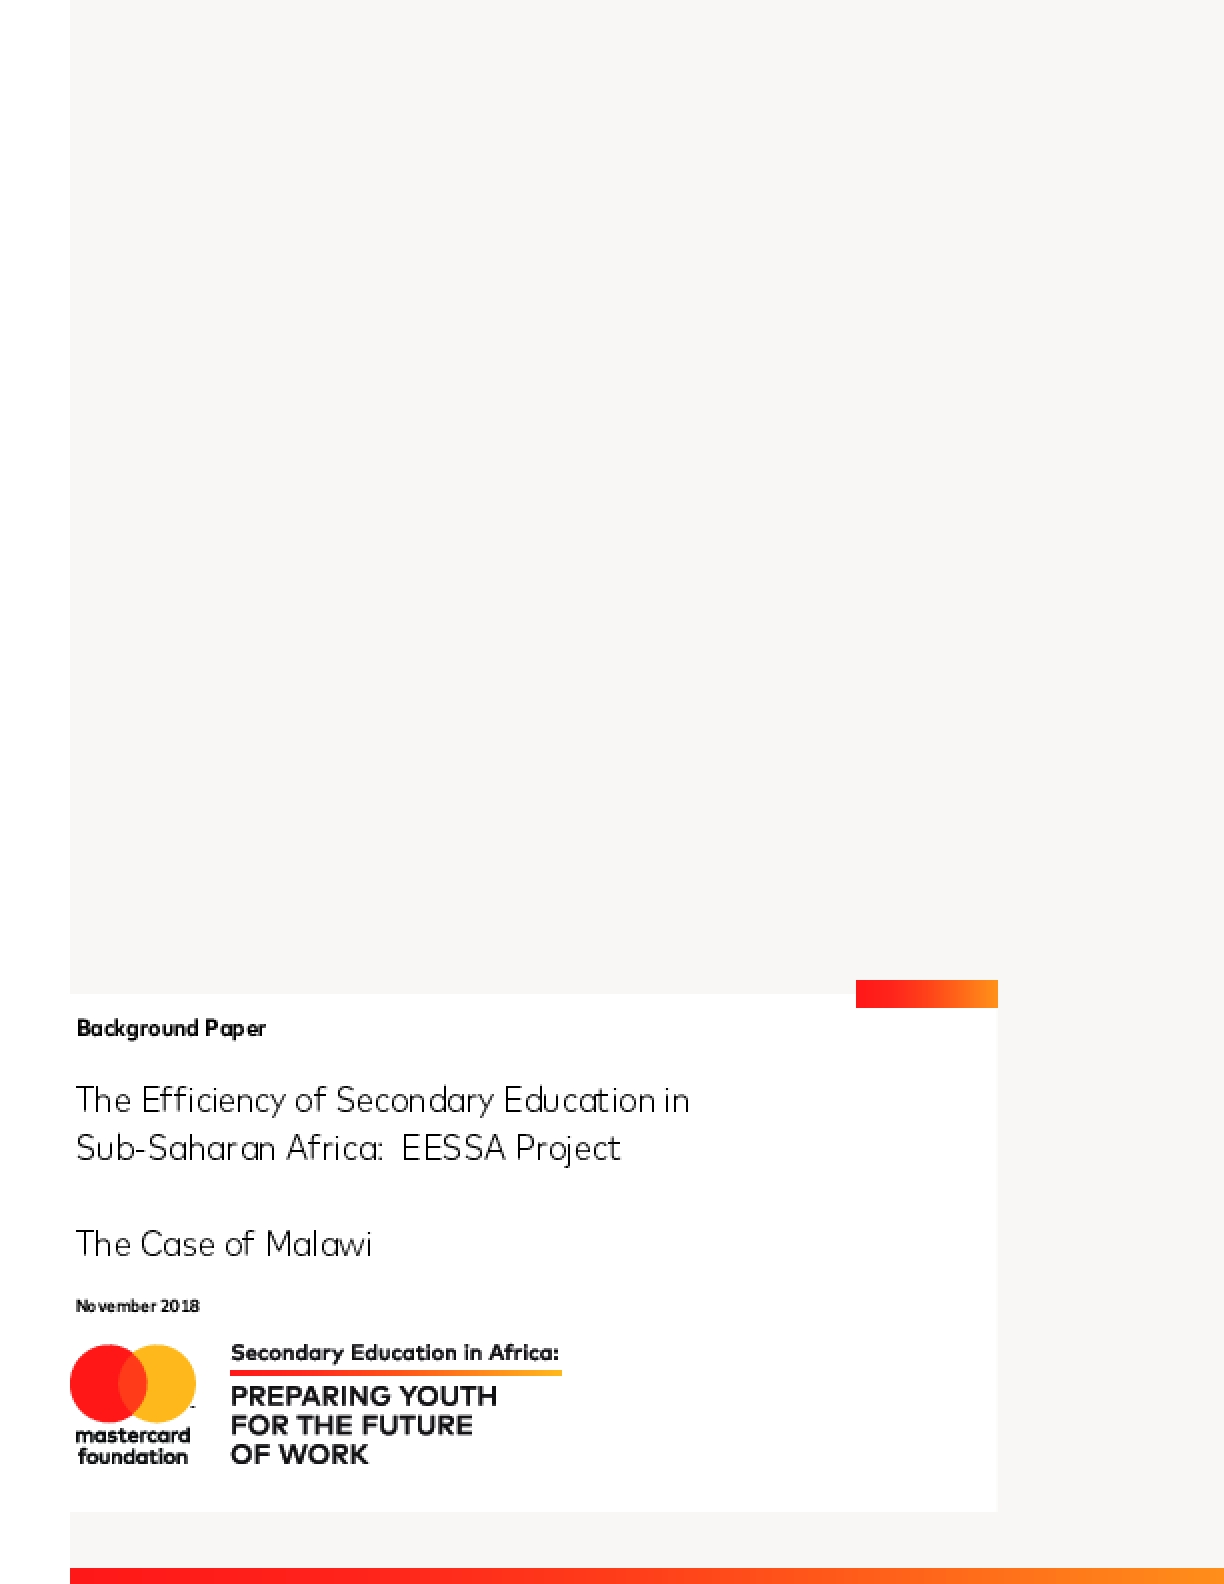 The Efficiency of Secondary Education in Sub-Saharan Africa: EESSA Project The Case of Malawi